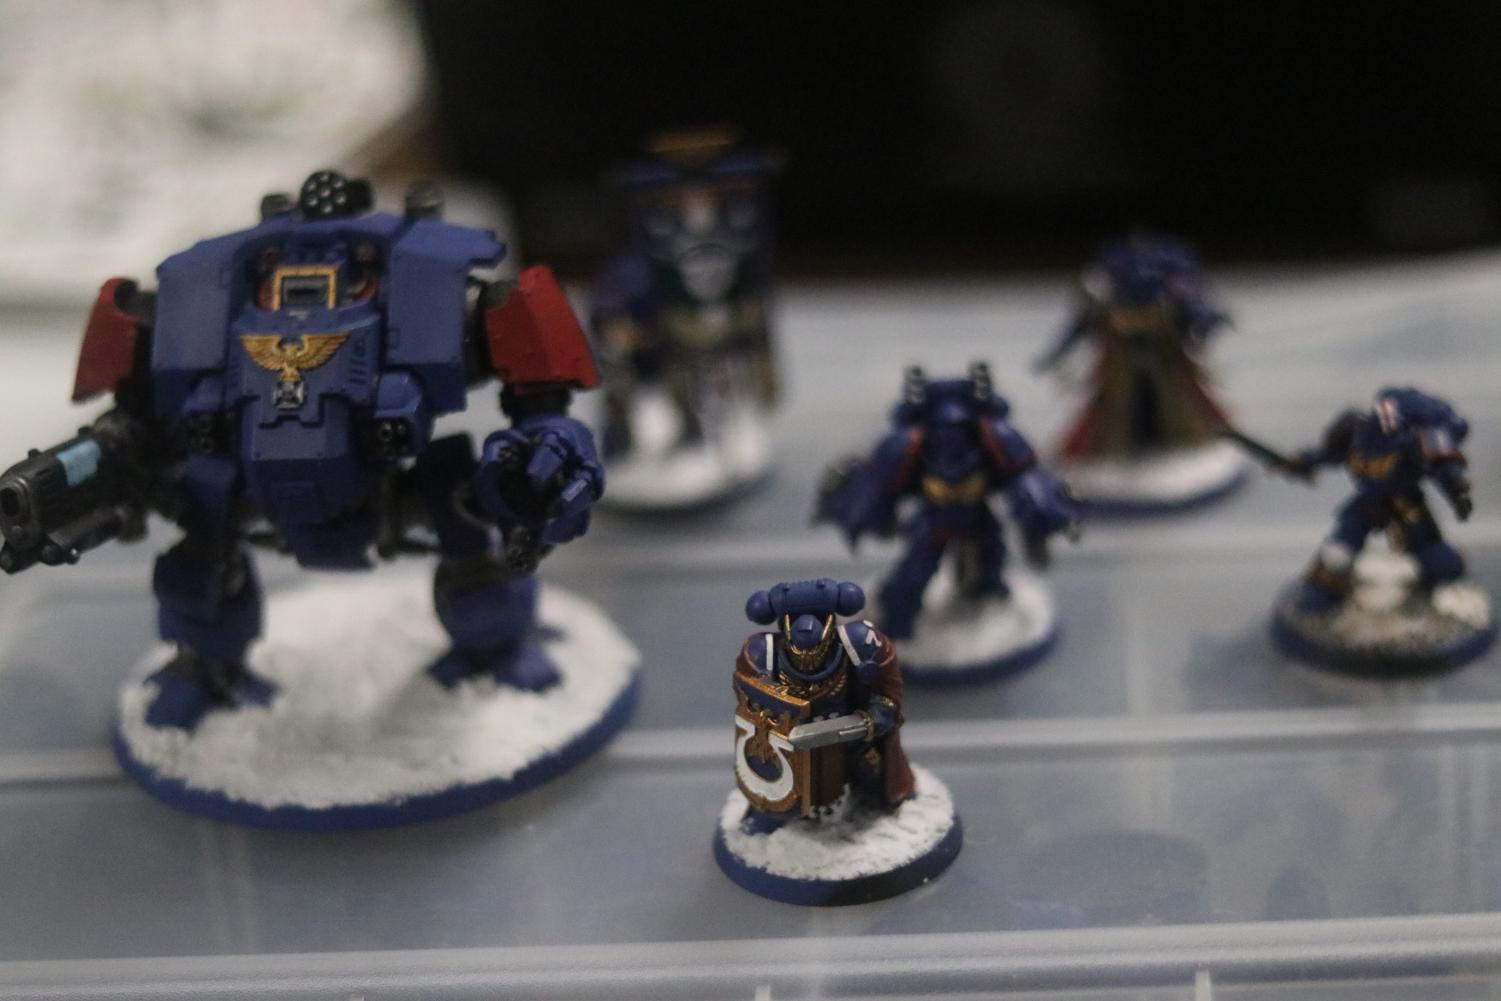 """A collection of Warhammer figurines from the same army. These troops are from the """"Astra Militarum"""" army, though their color is junior Timothy Dinh's decision. Photo by Jose Perez."""